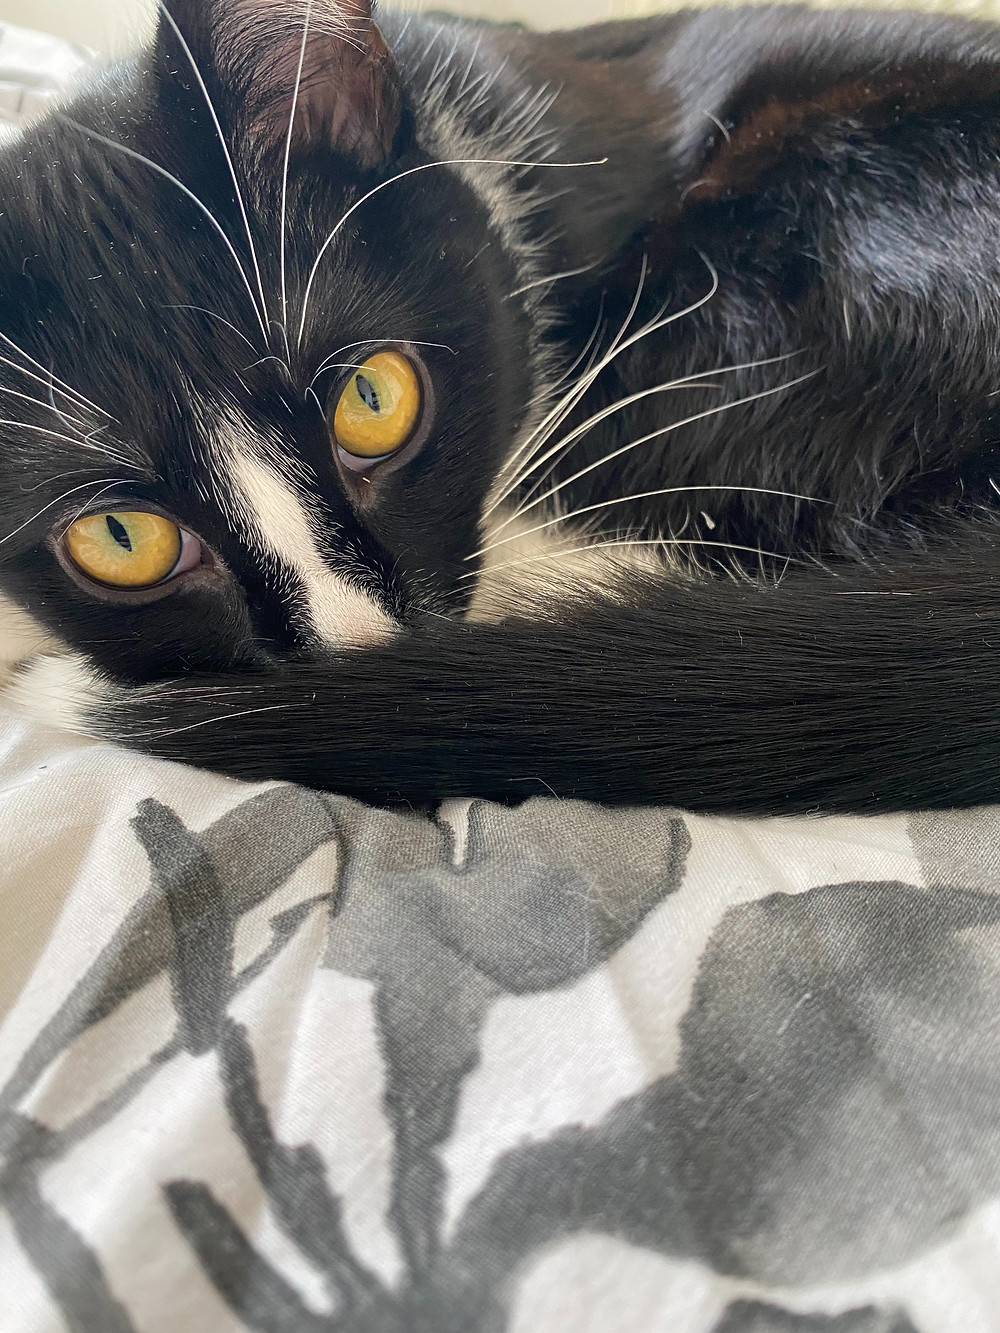 Bao, a black and white kitten with golden eyes stares at the camera.